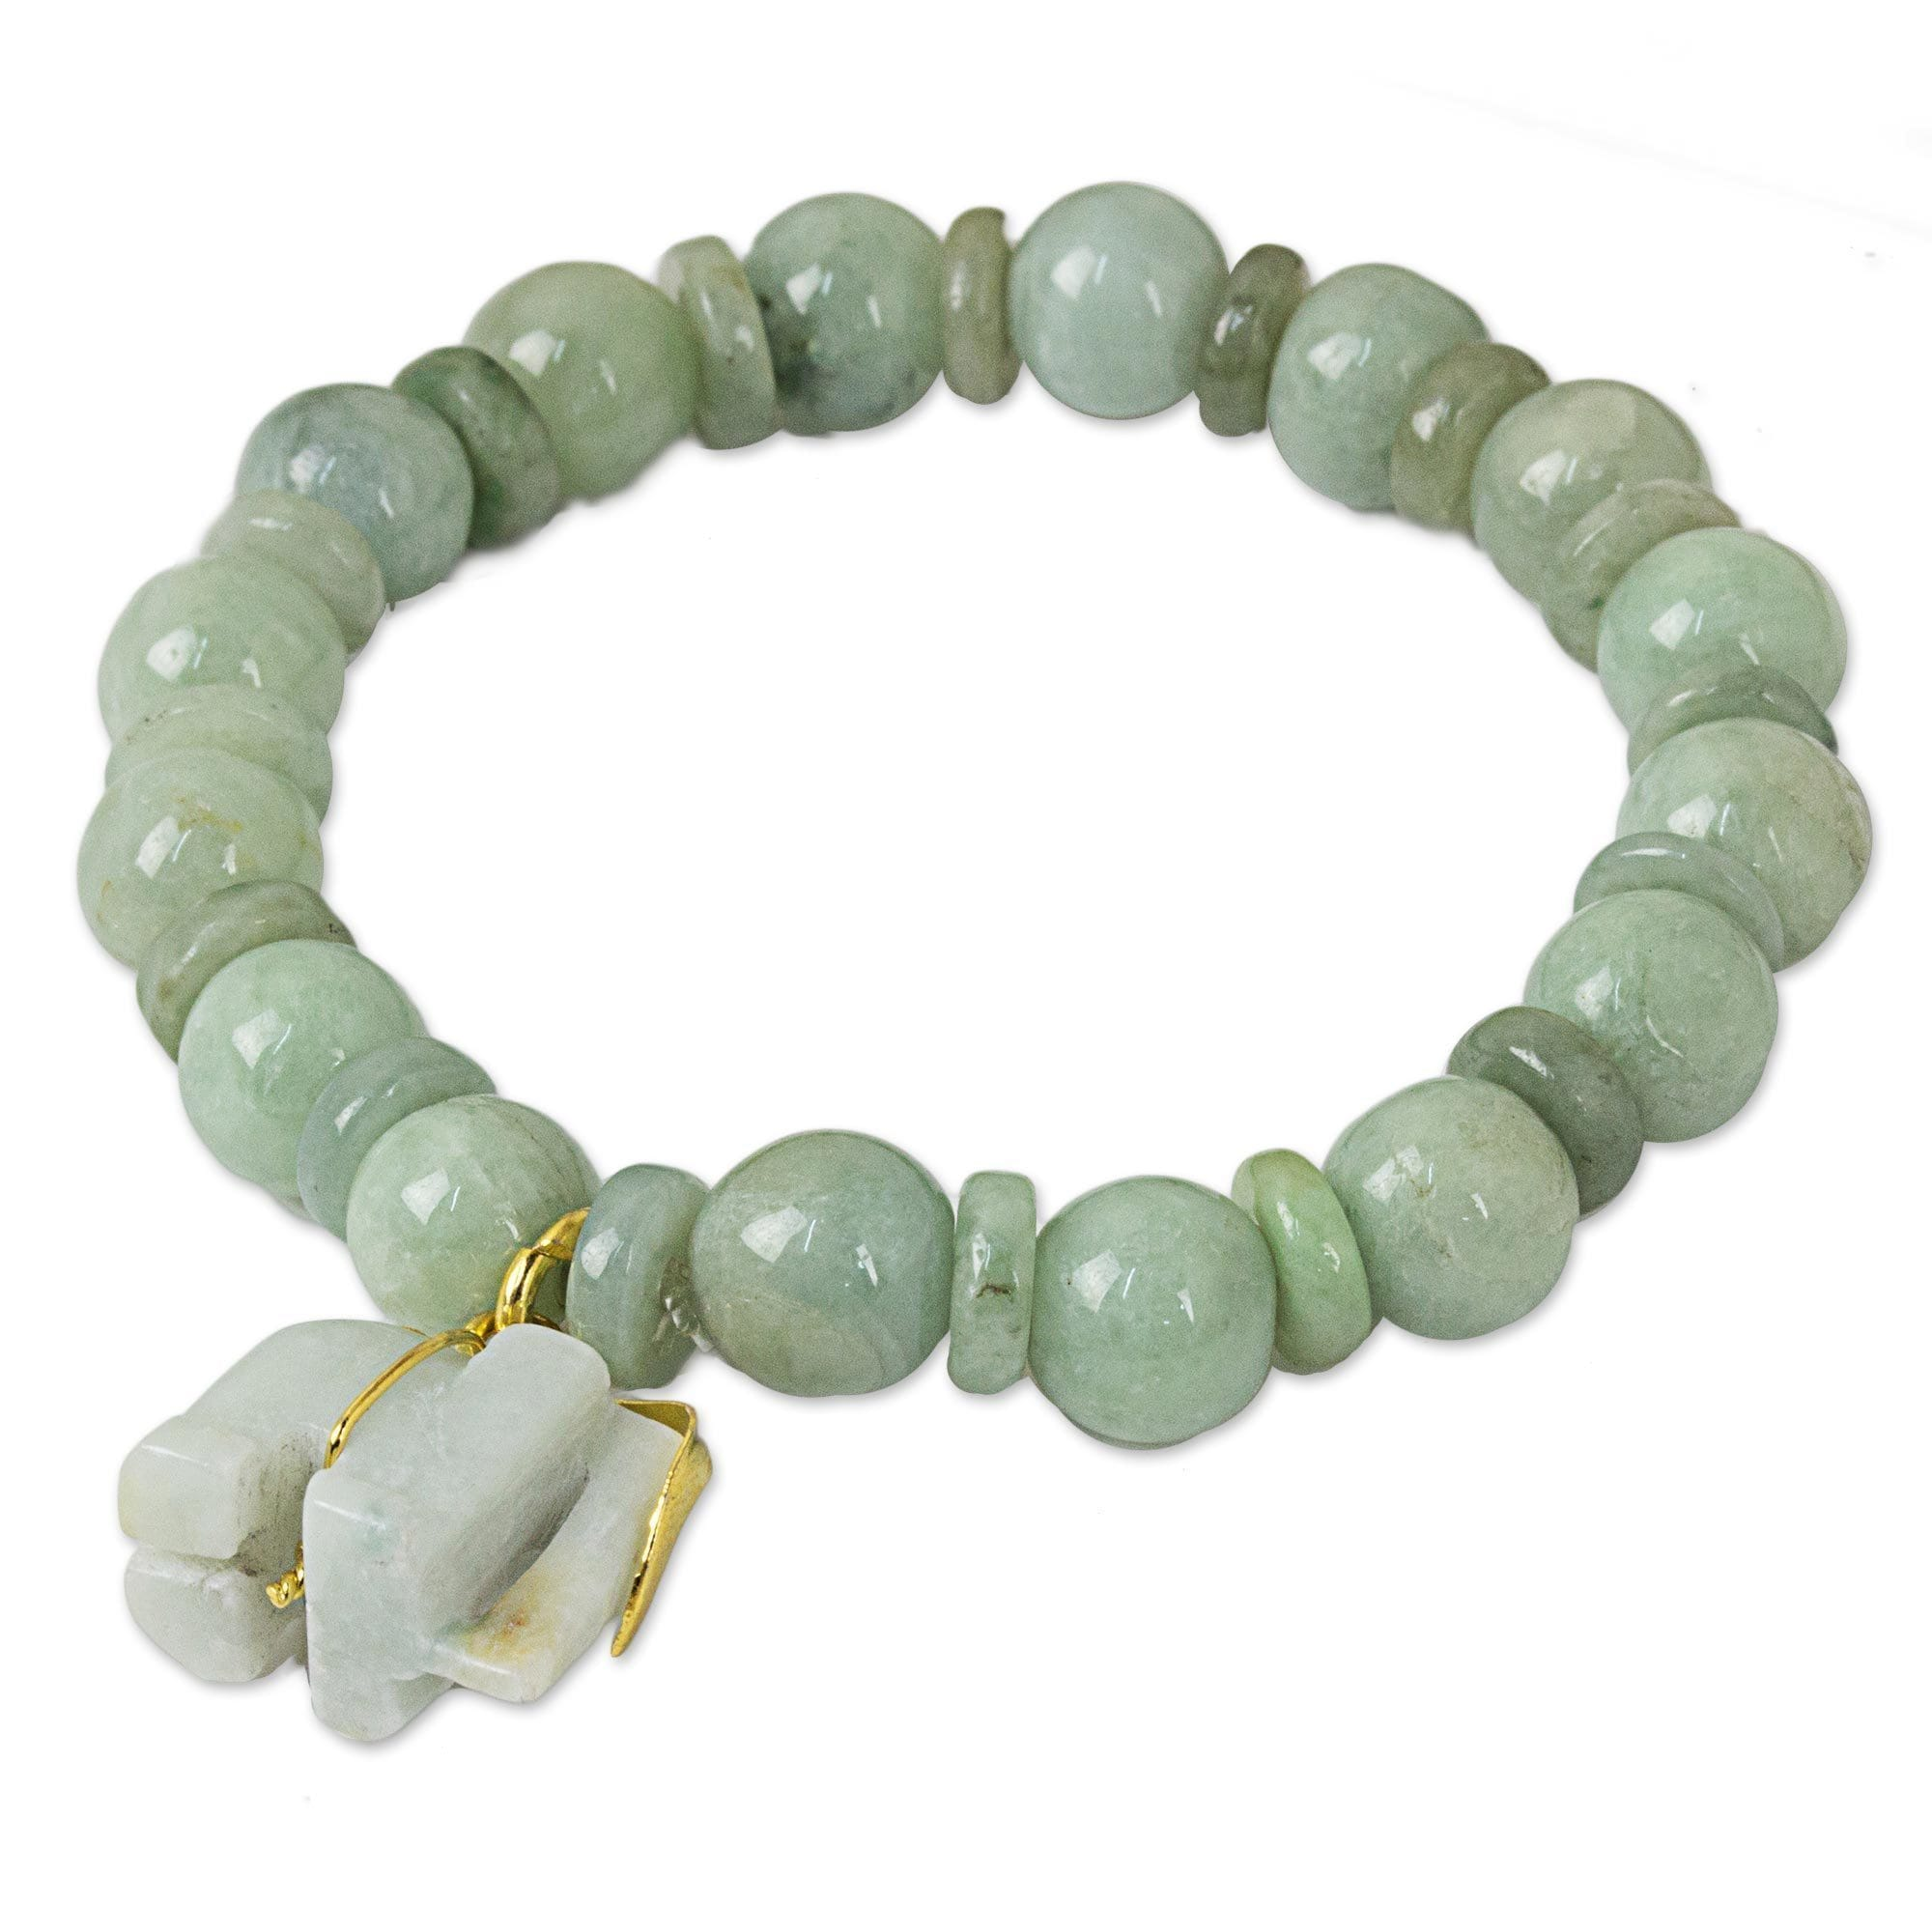 bracelet jade products tourmaline tiger green beads image meno la eye with tigereye unisex black agate